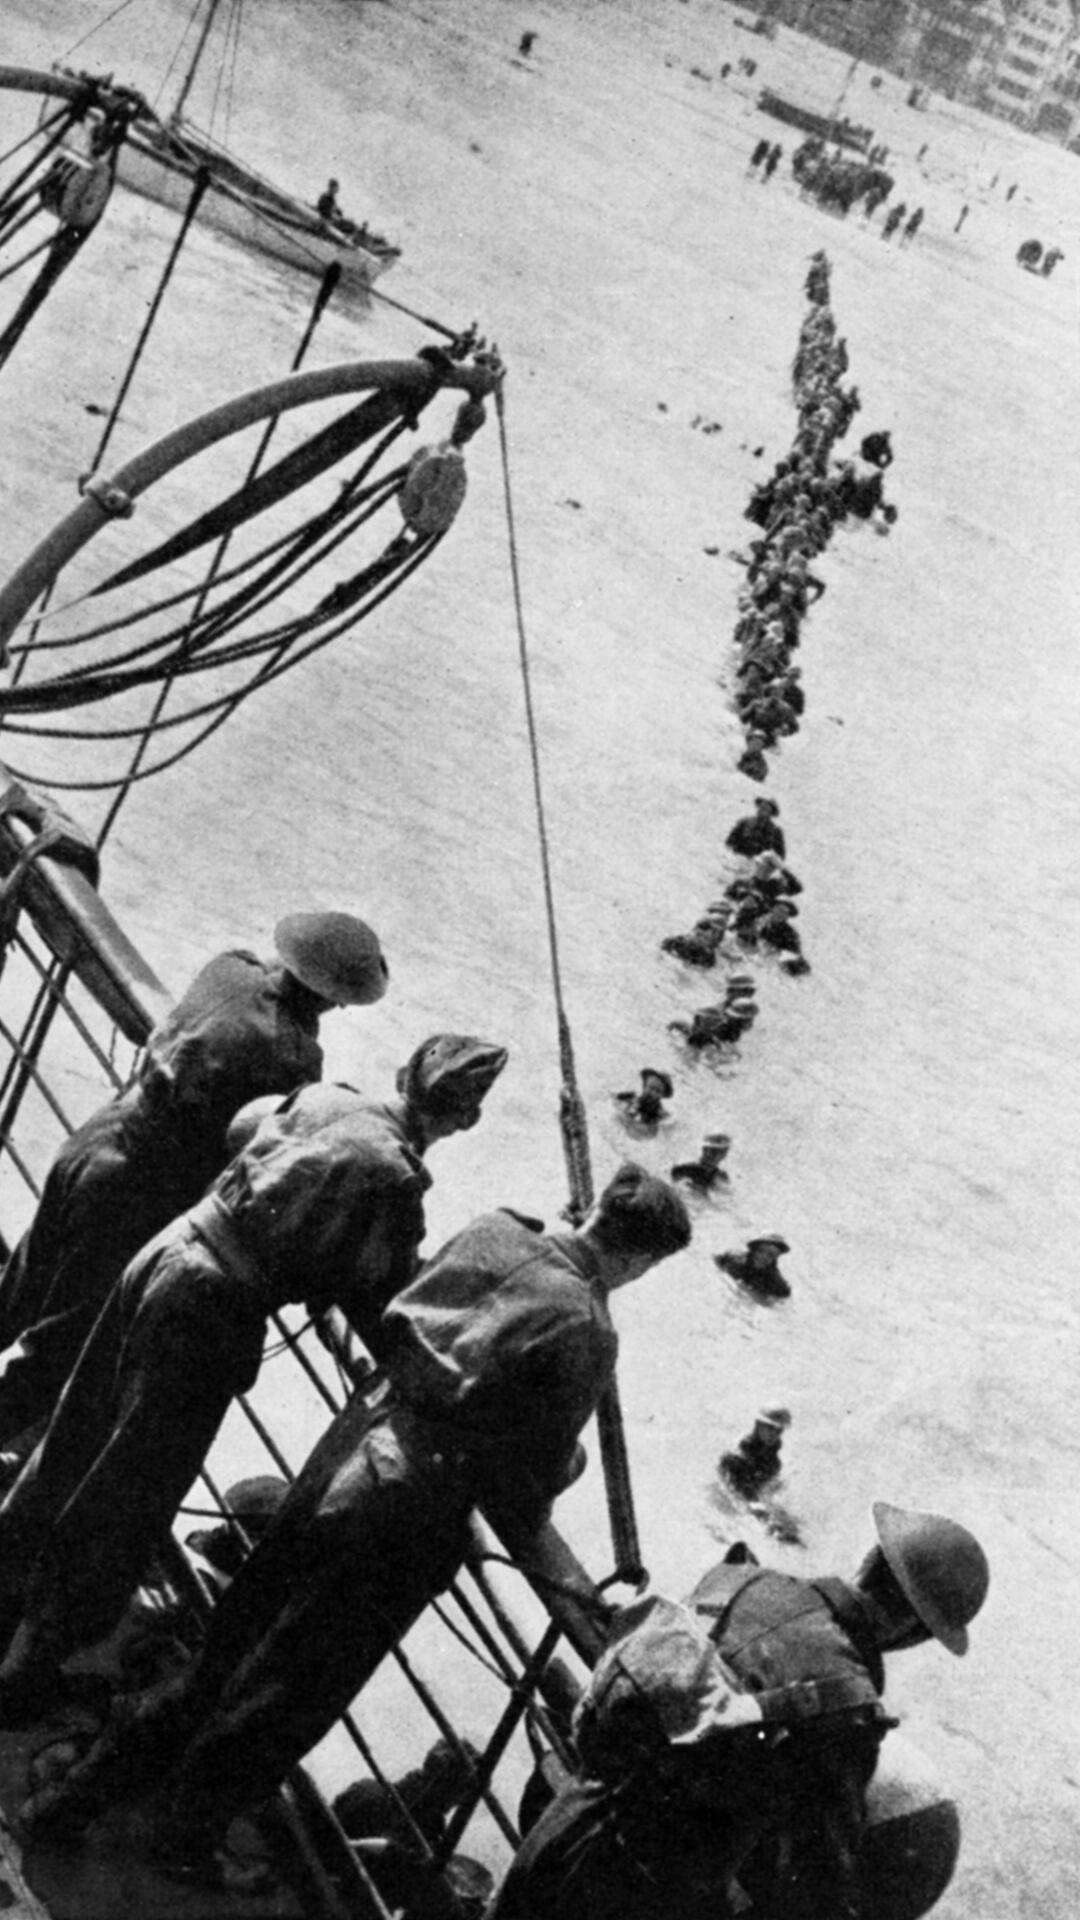 For the evacuation of British troops, most soldiers had to wade out in the water to find a rescue vessels.